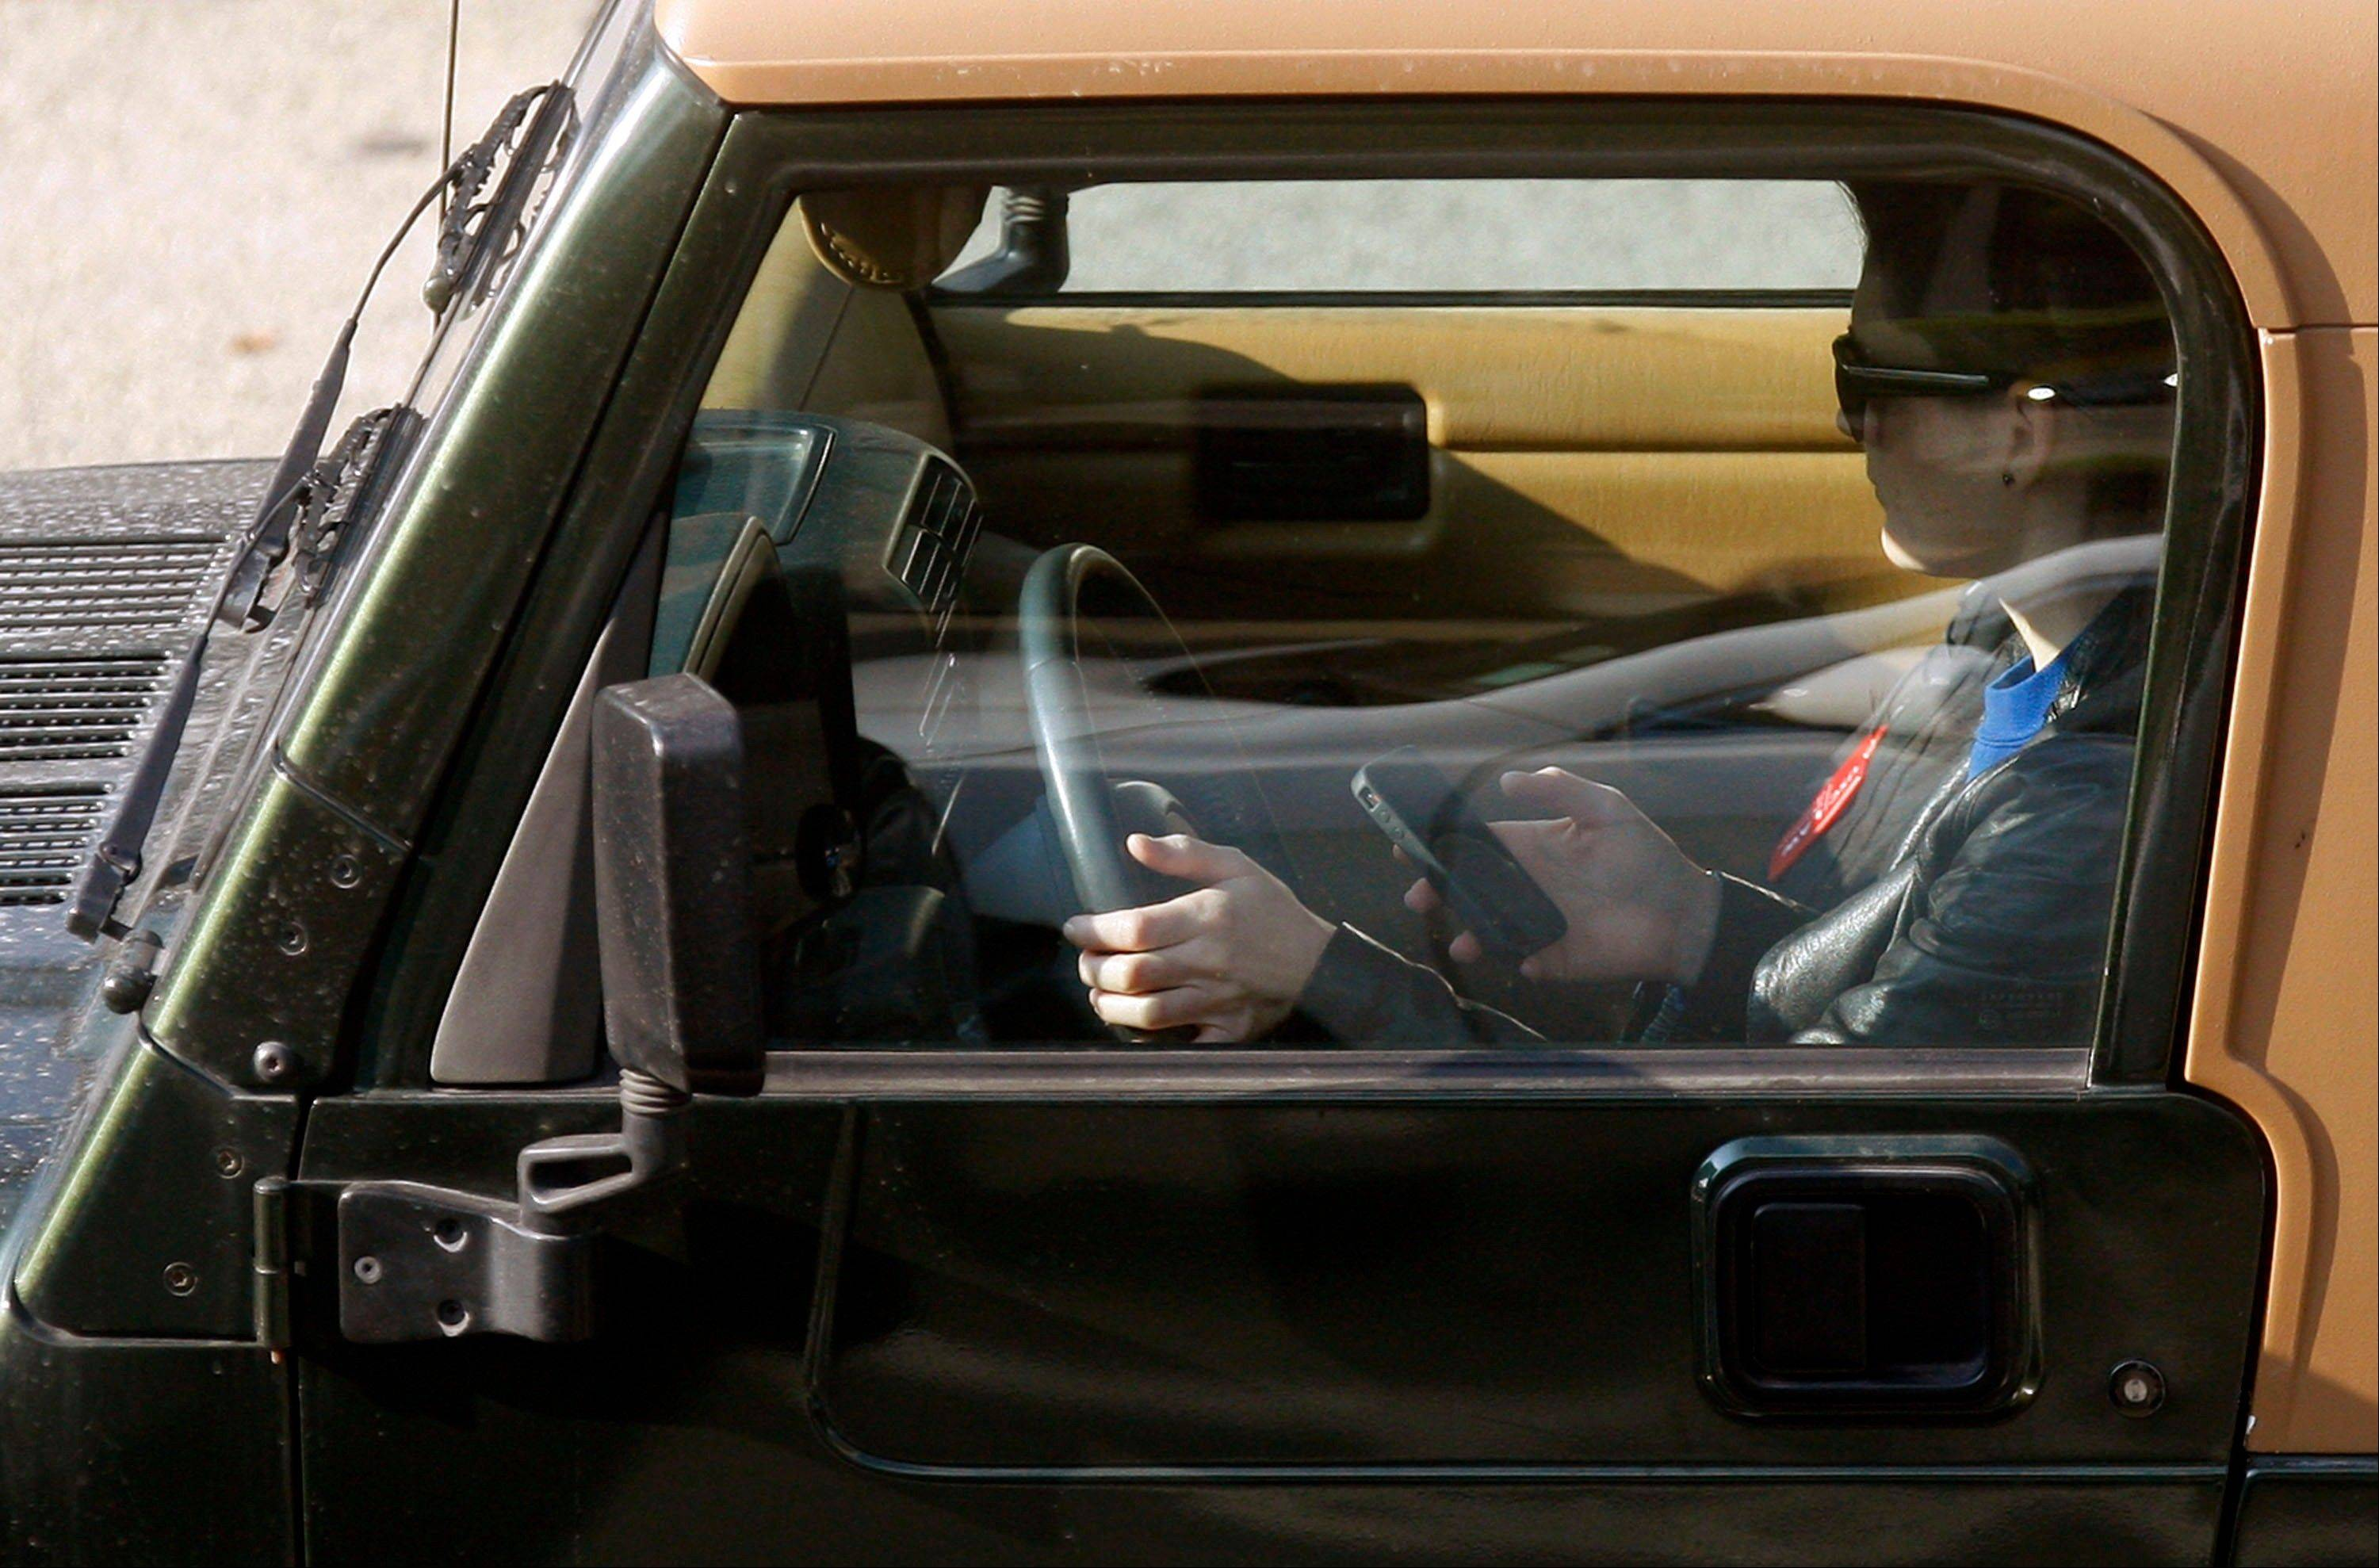 A driver uses an iPhone while driving Wednesday, in Los Angeles. The country�s four biggest cellphone companies are set to launch their first joint advertising campaign against texting while driving, uniting behind AT&T�s �It Can Wait� slogan to blanket TV and radio during the summer of 2013.